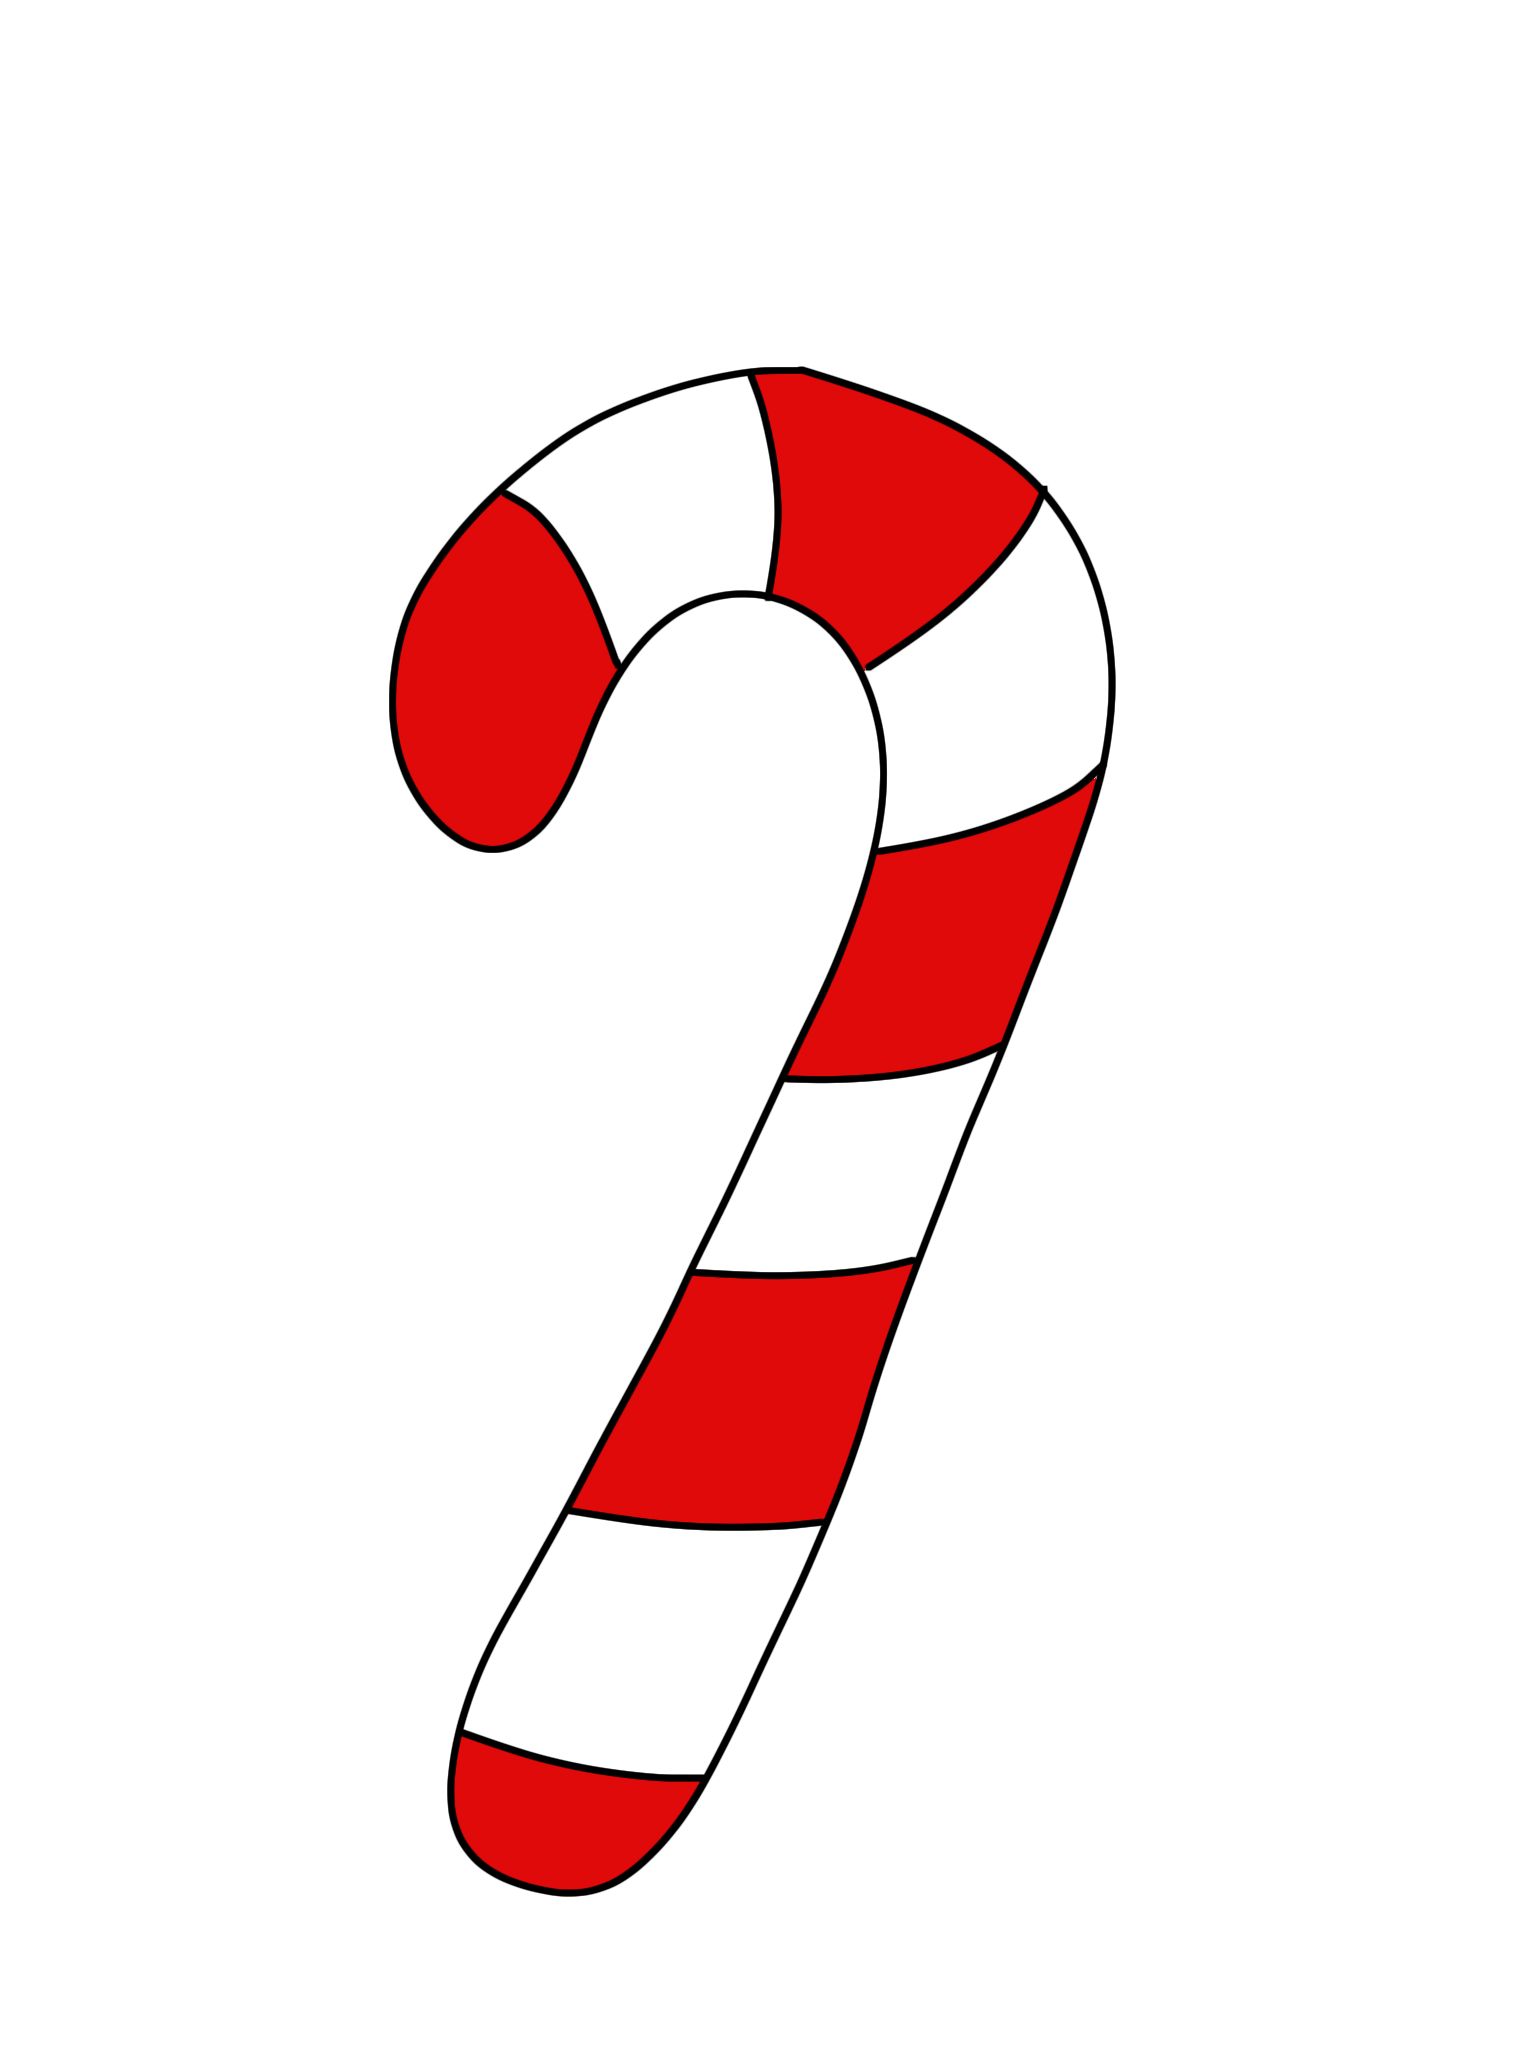 Candy cane clip art clipart free clipart microsoft clipart image 2